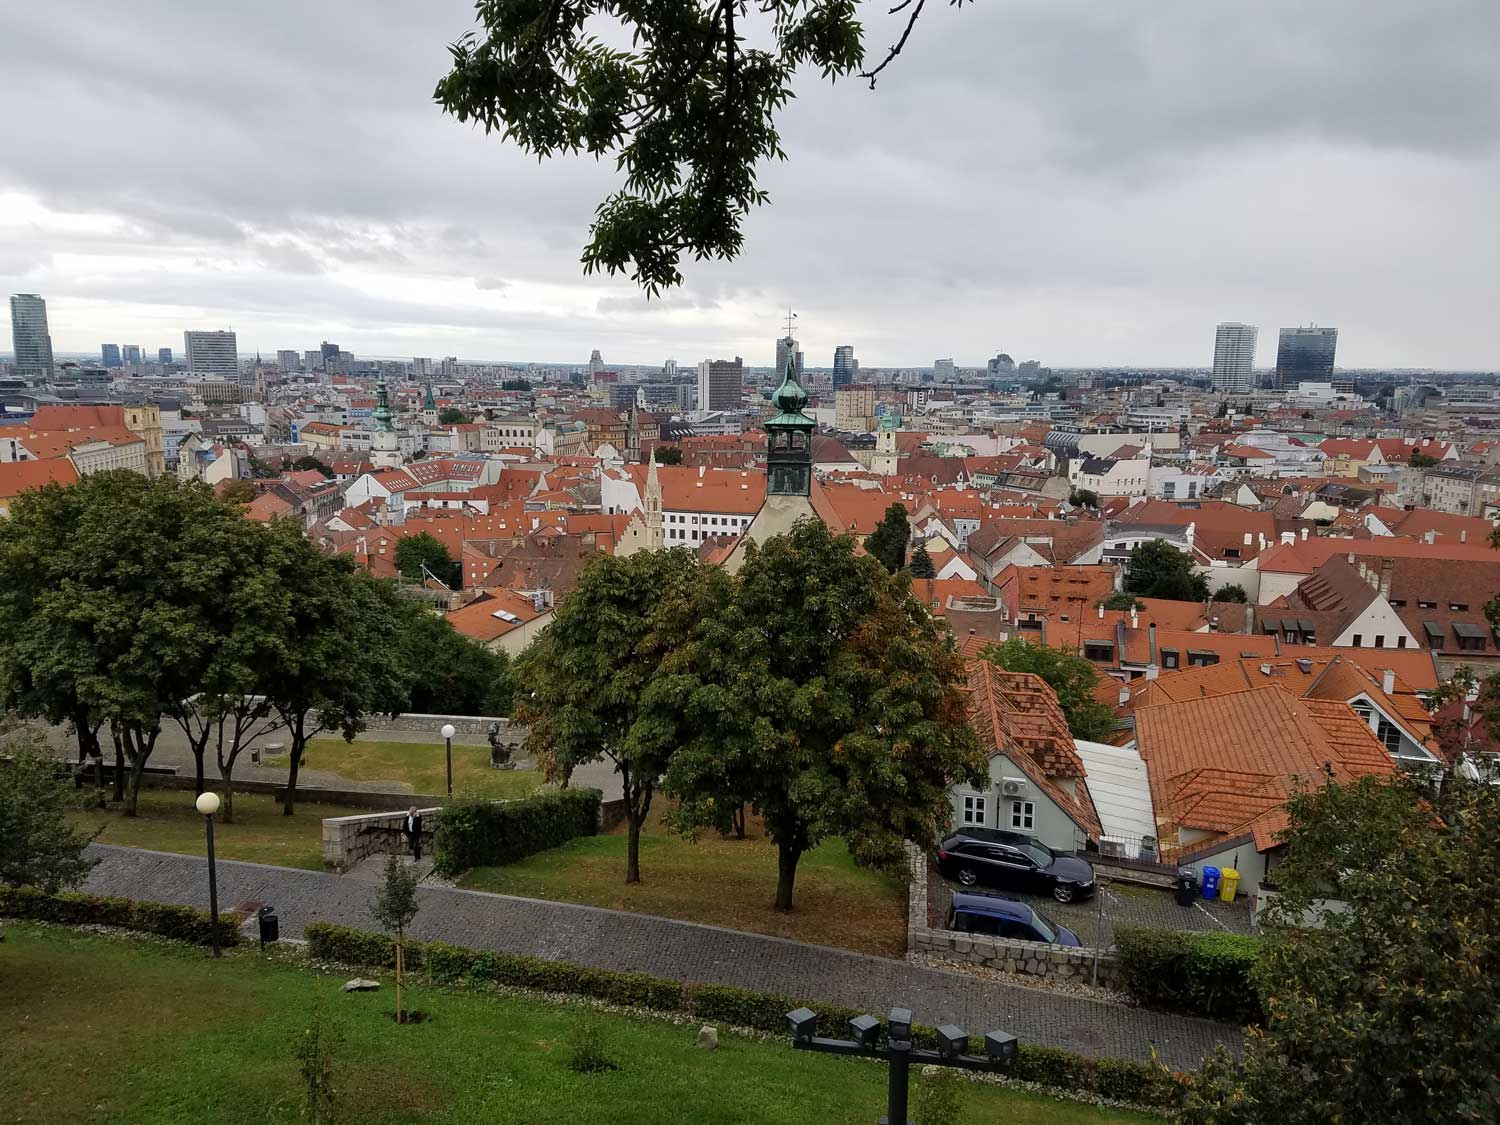 View from Bratislava Castle looking over the city.